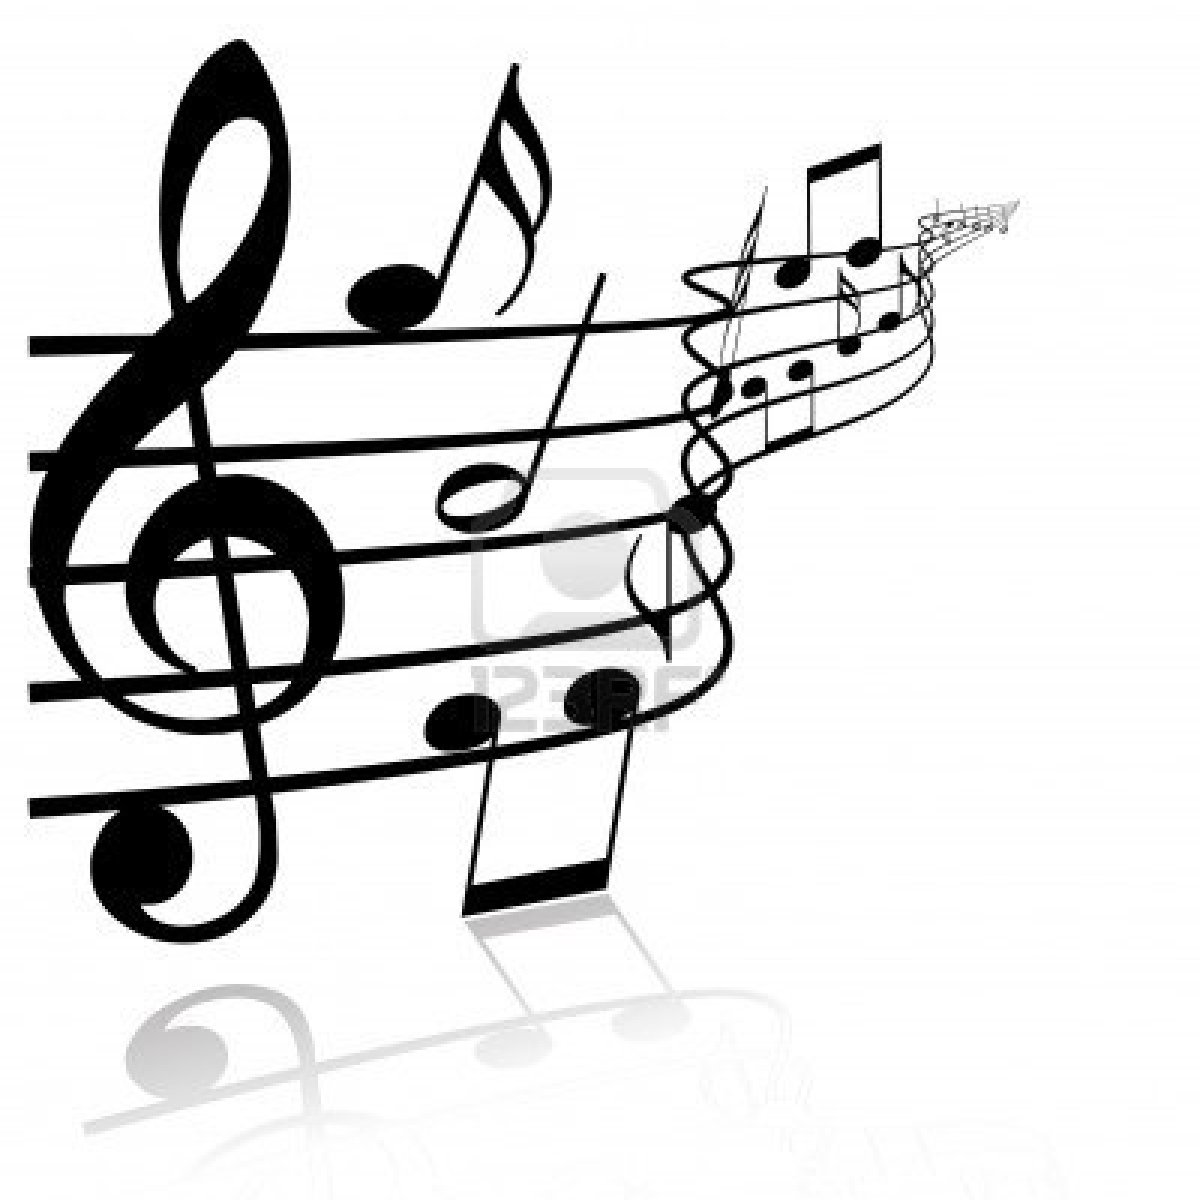 Drawn music notes music themed On – white Best on